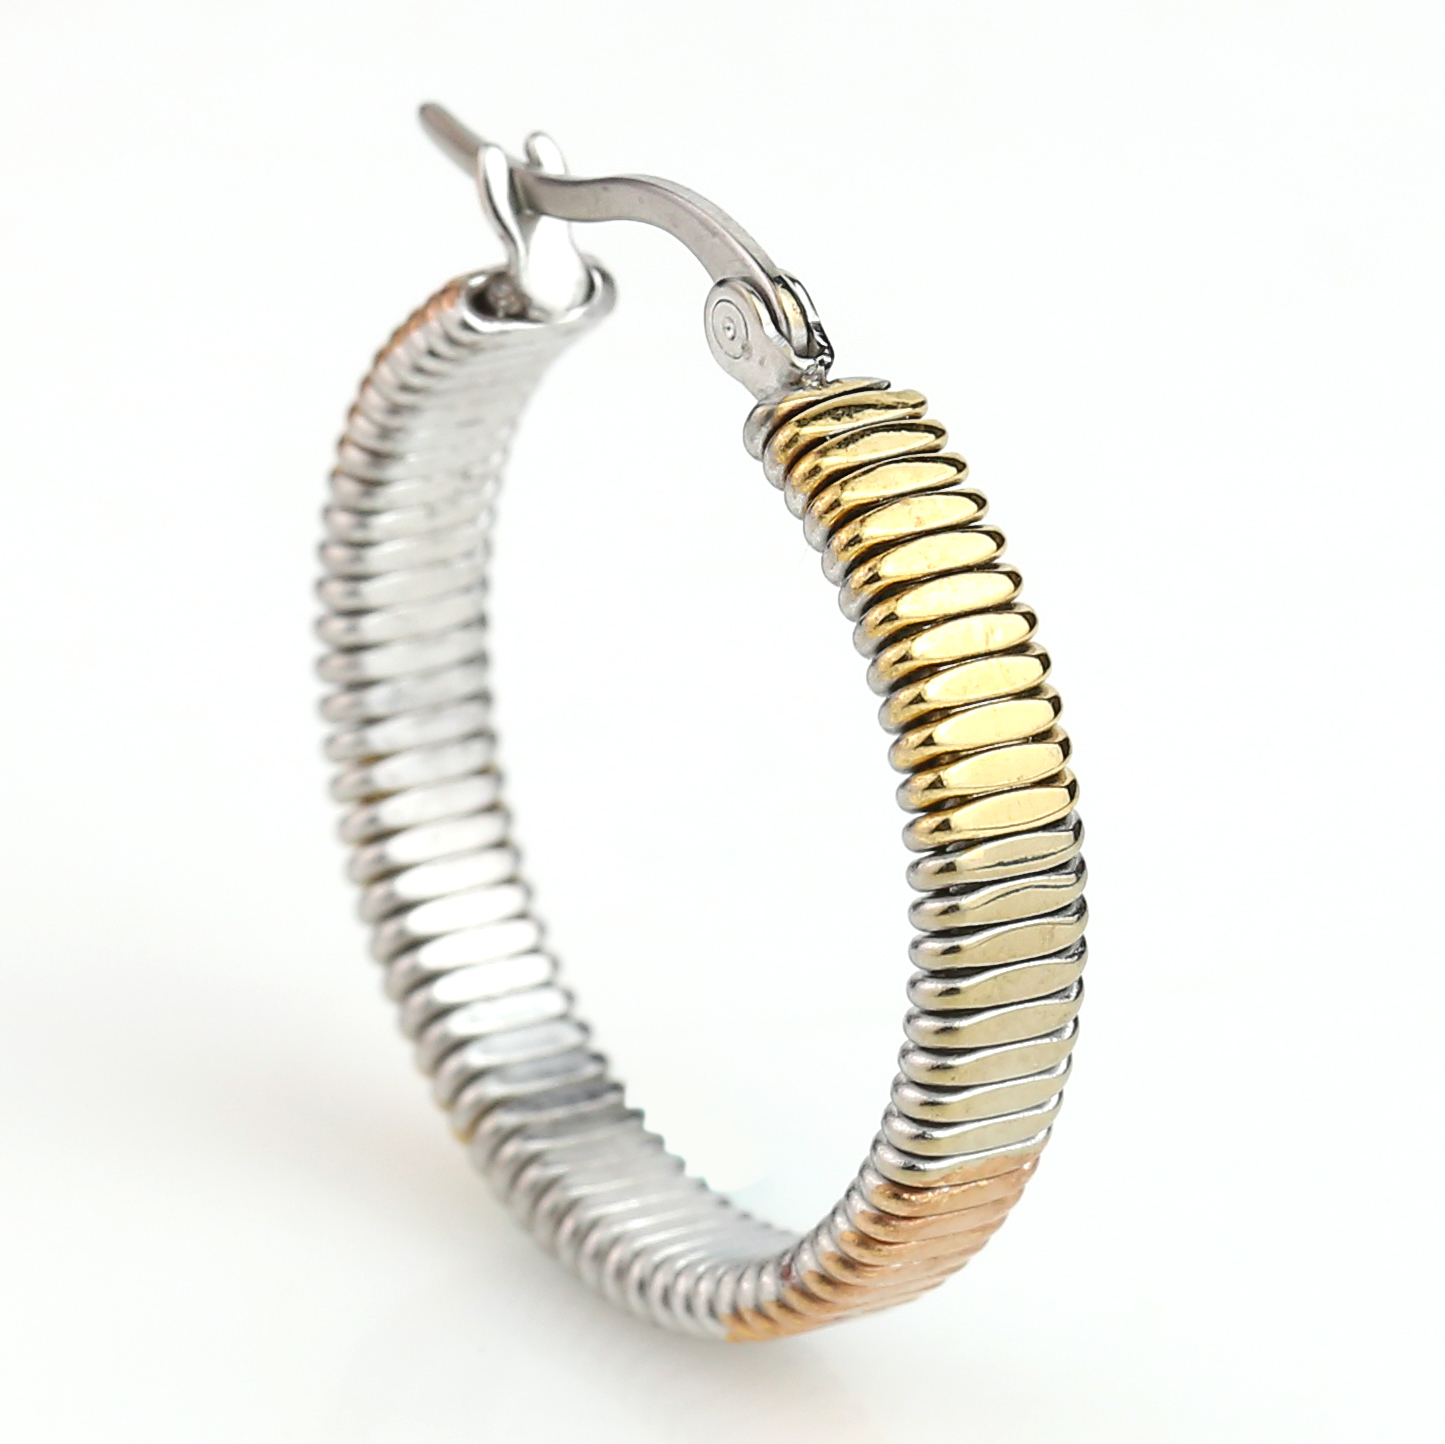 Contemporary Tri-Color Silver, Gold & Rose Tone Hoop Earrings- United Elegance image 2